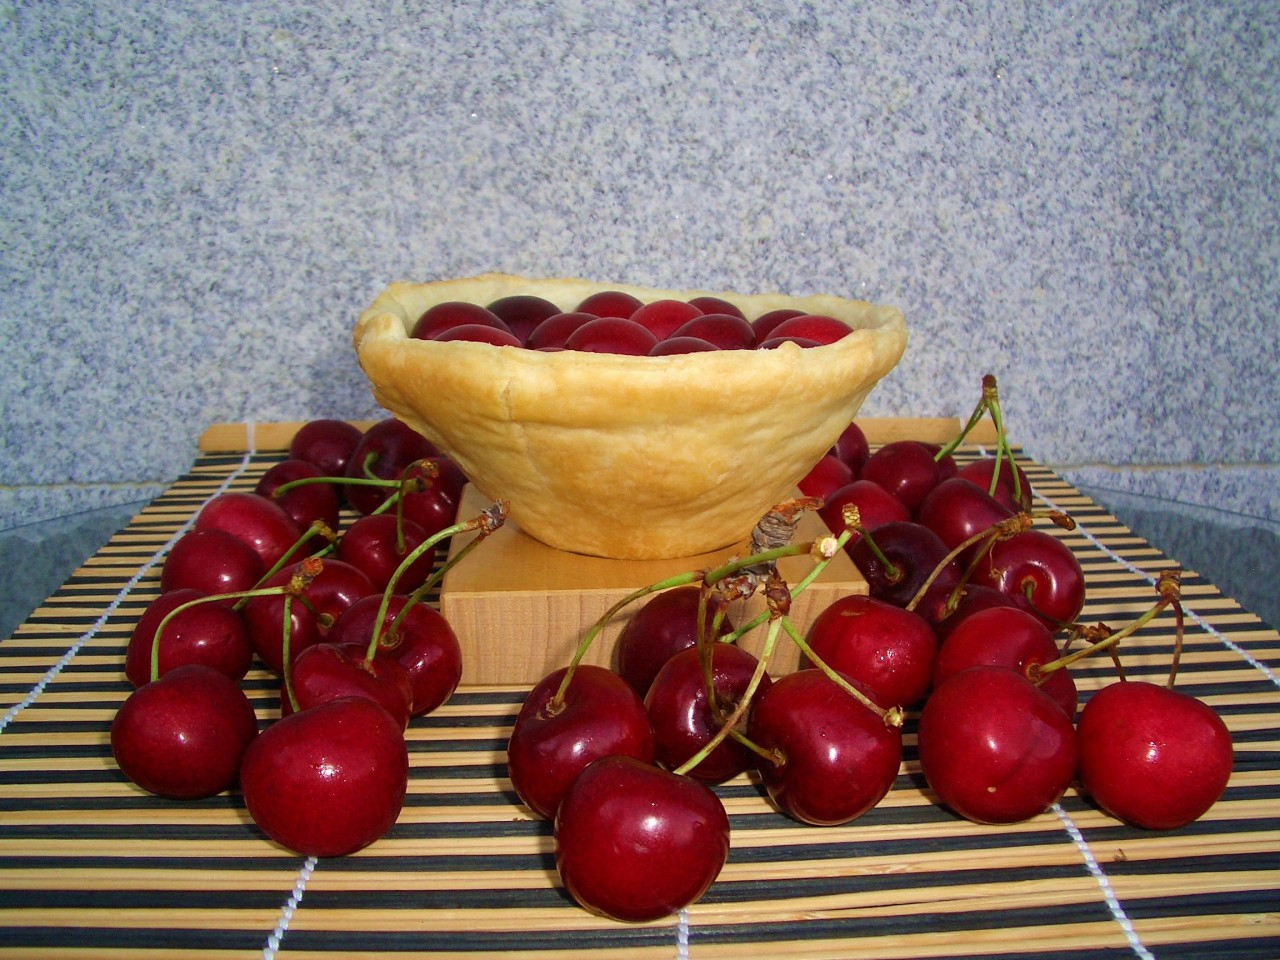 Tartaleta de Cerezas – Cherry and Custard Shortcake